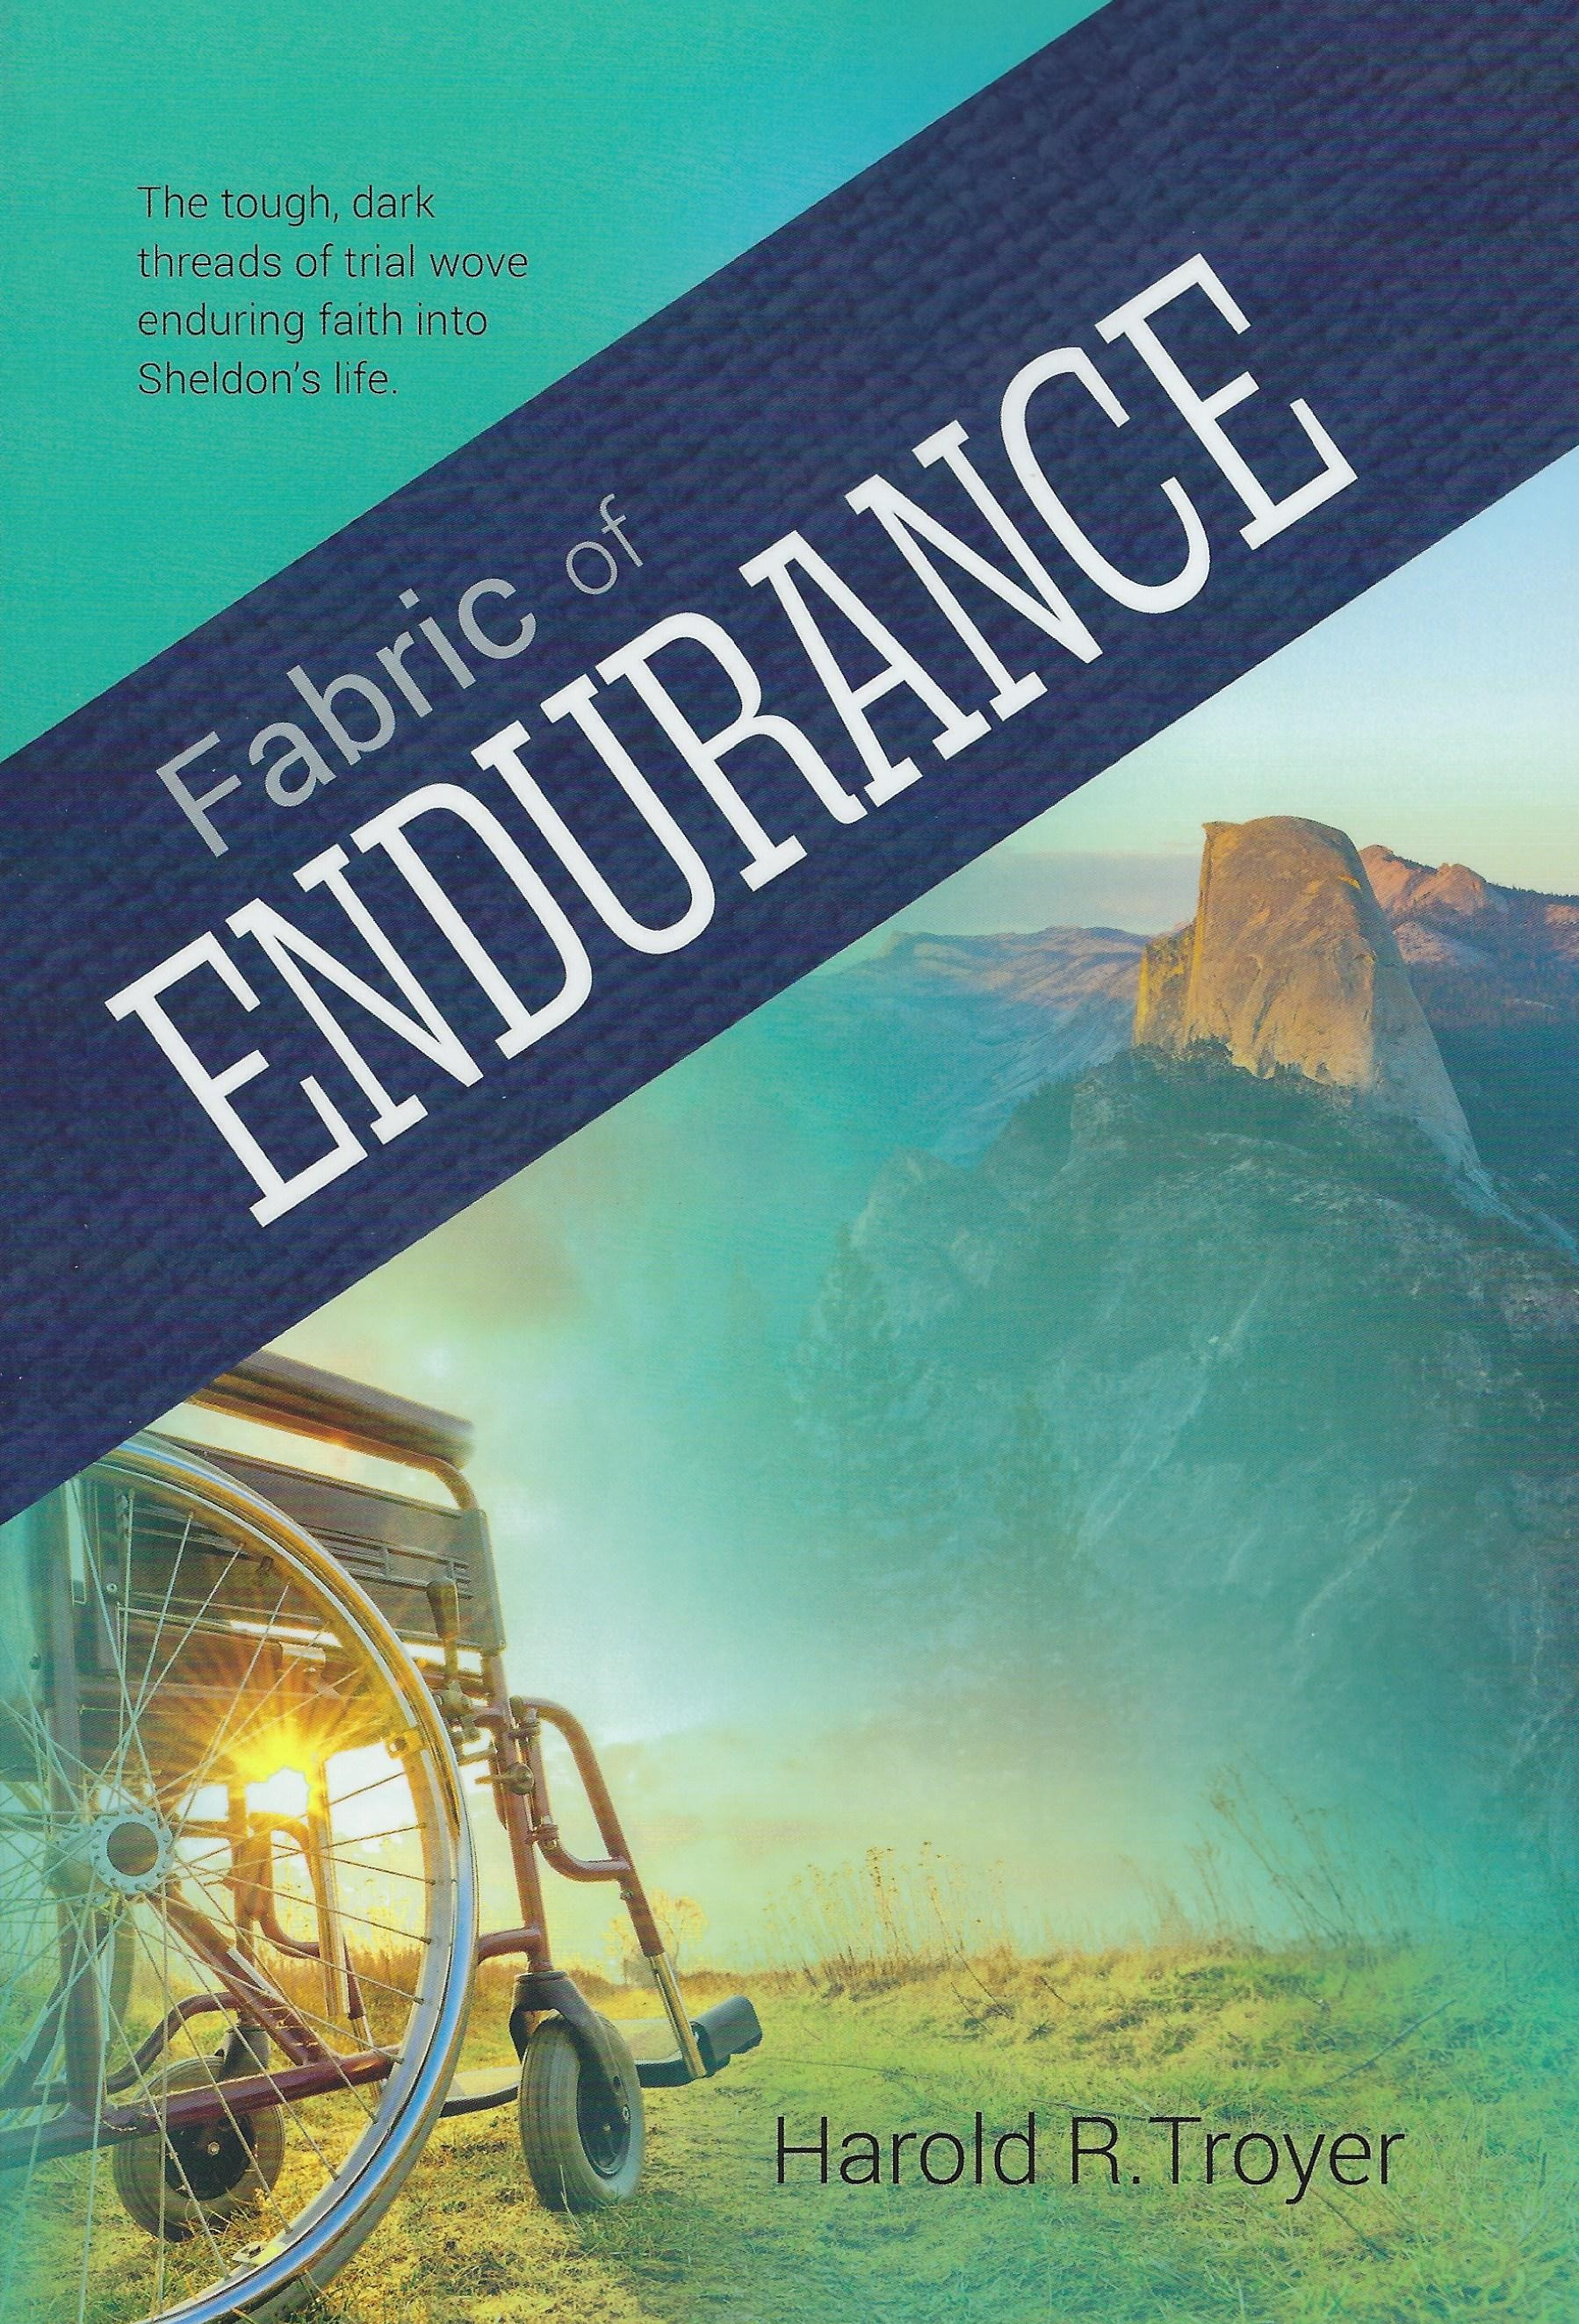 FABRIC OF ENDURANCE Harold R. Troyer